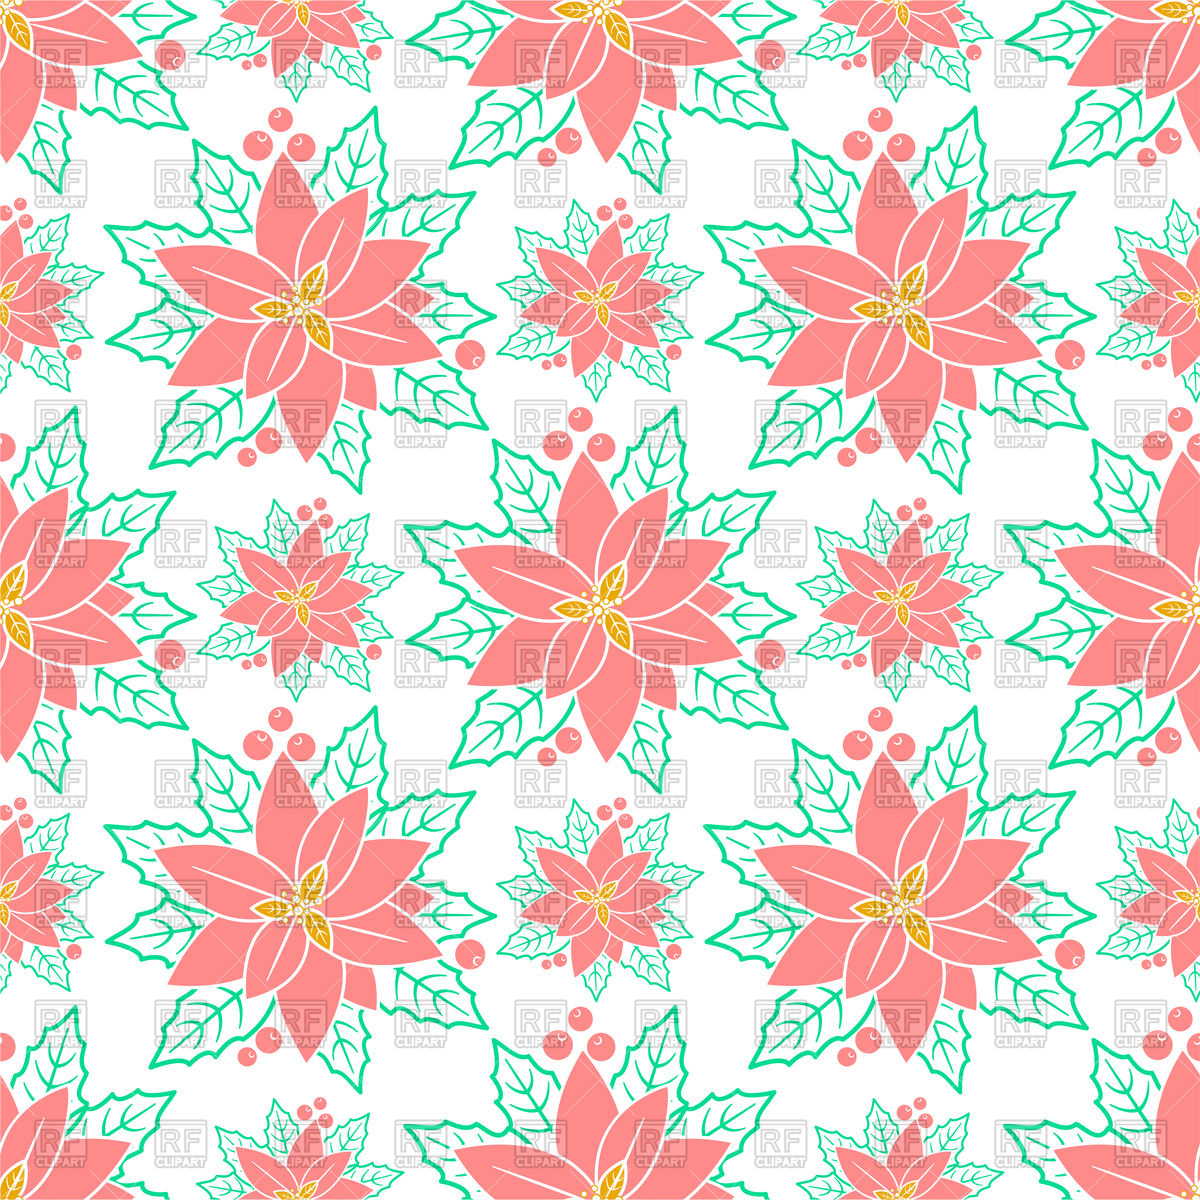 Seamless pattern background with poinsettia flowers Vector Image 1200x1200